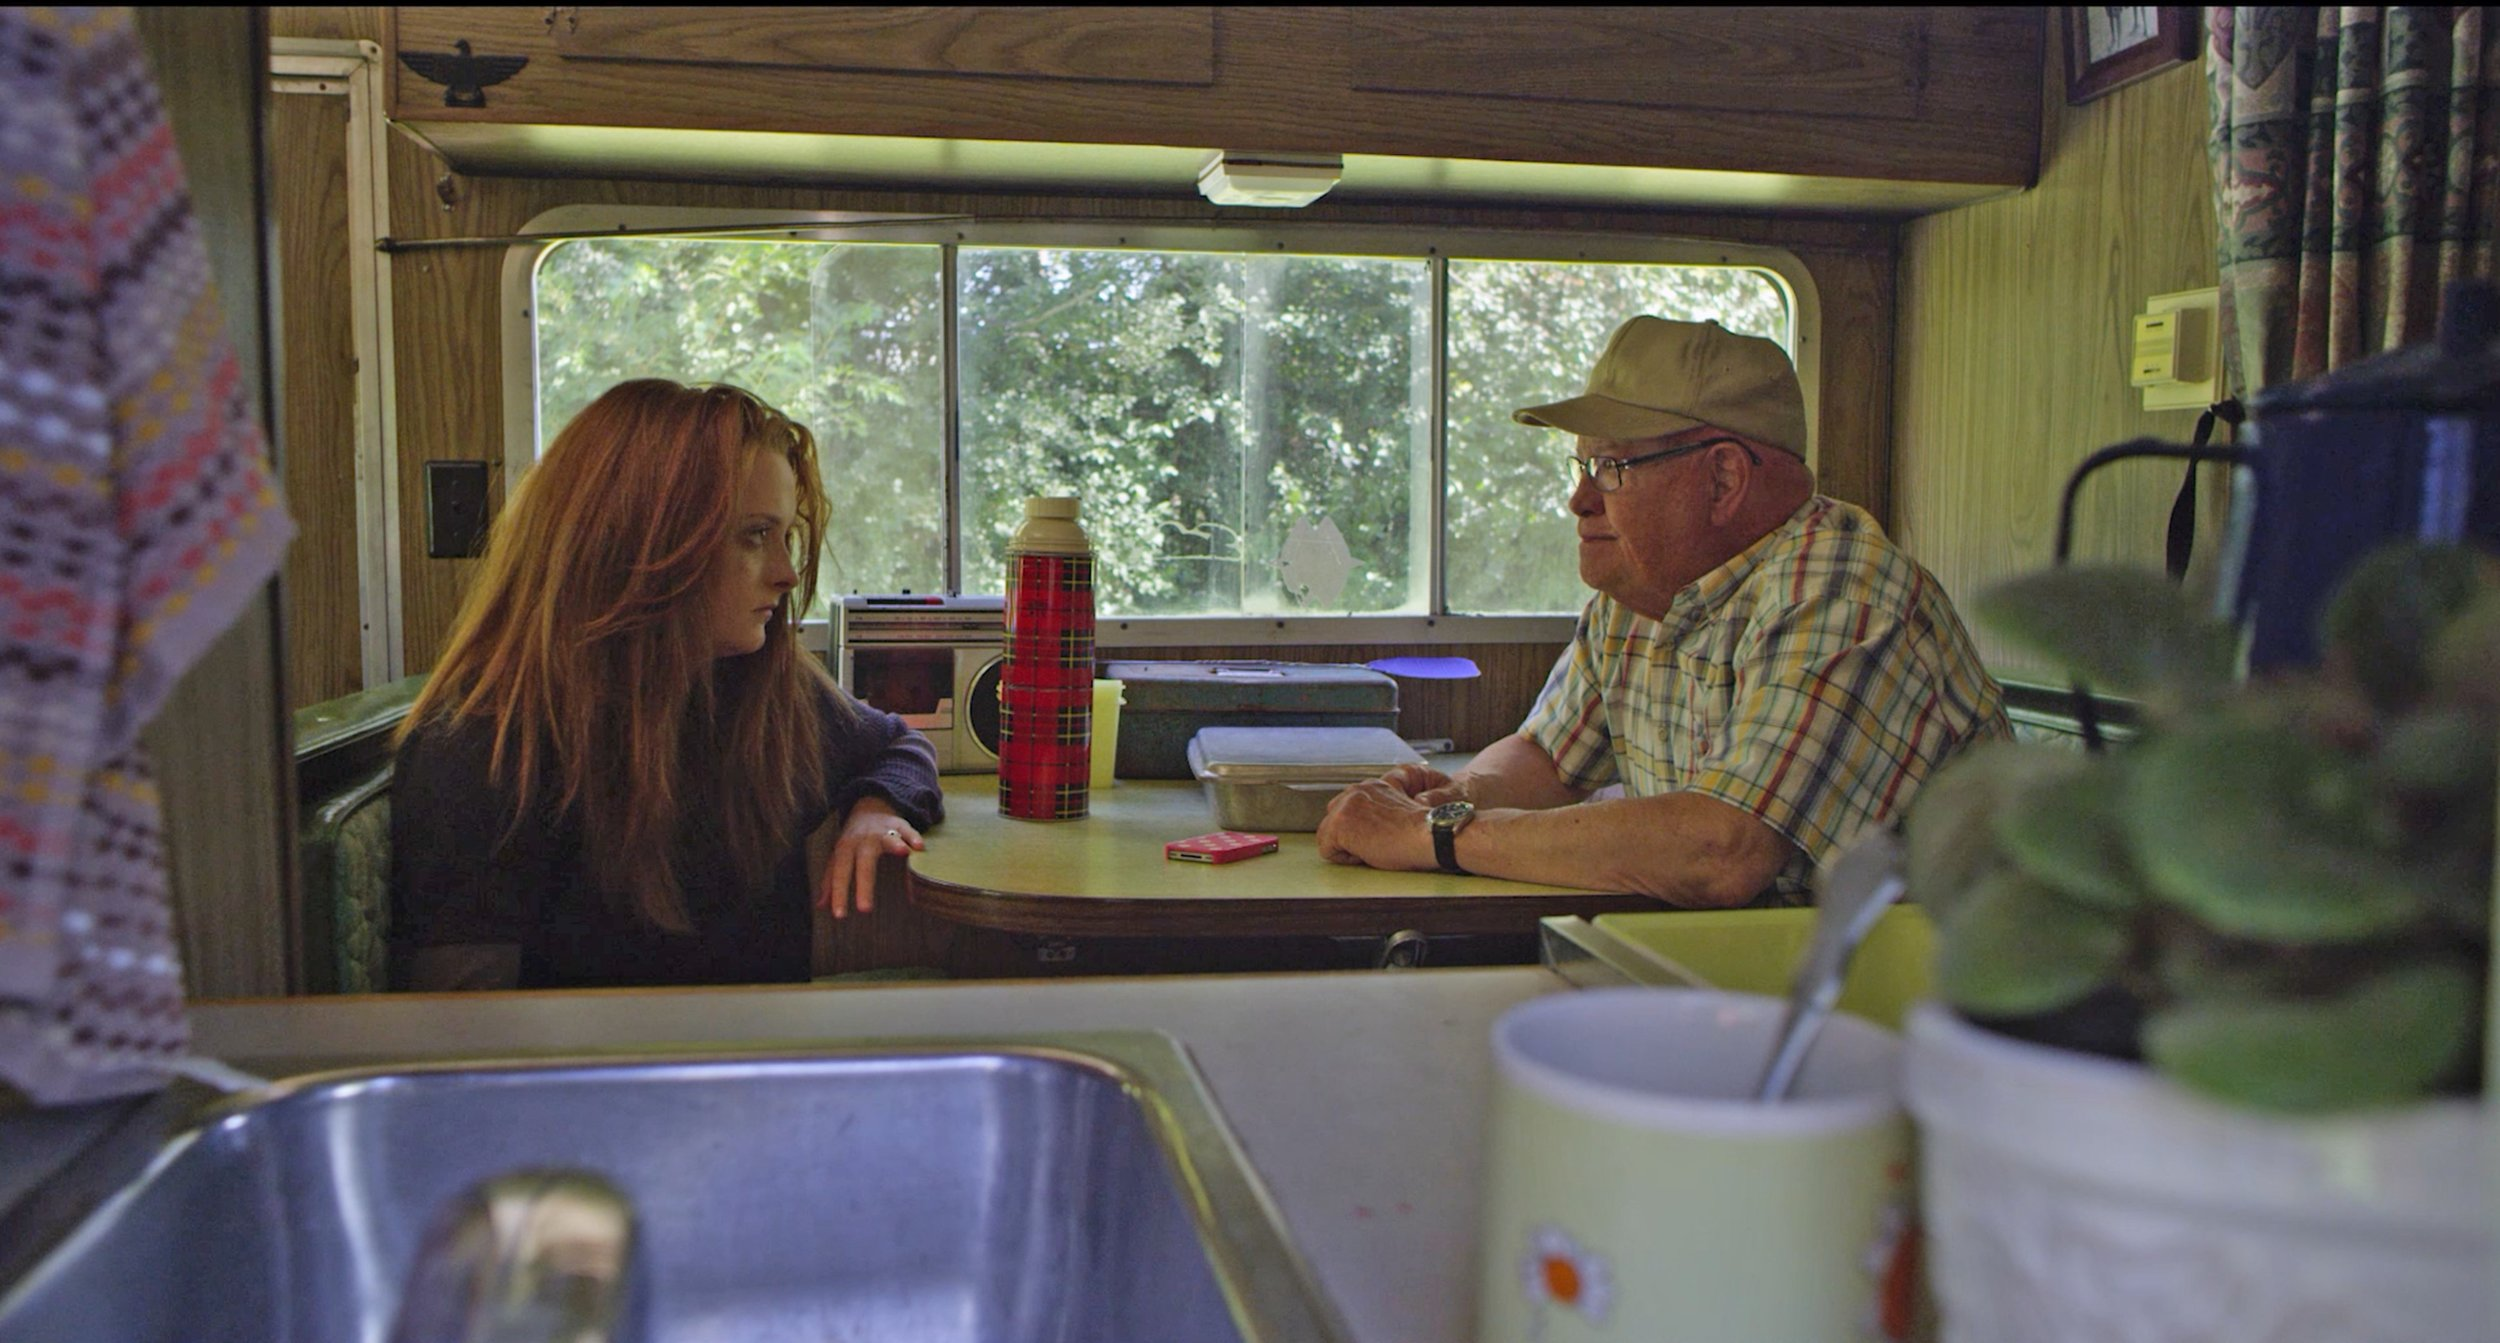 """Retired farmer Hap Anderson (Barry Corbin, right) and his college-graduate granddaughter Ashley (Mackinlee Waddell) argue during their road trip, in the comedy-drama """"Farmer of the Year."""" (Photo courtesy Yellow House Films.)"""